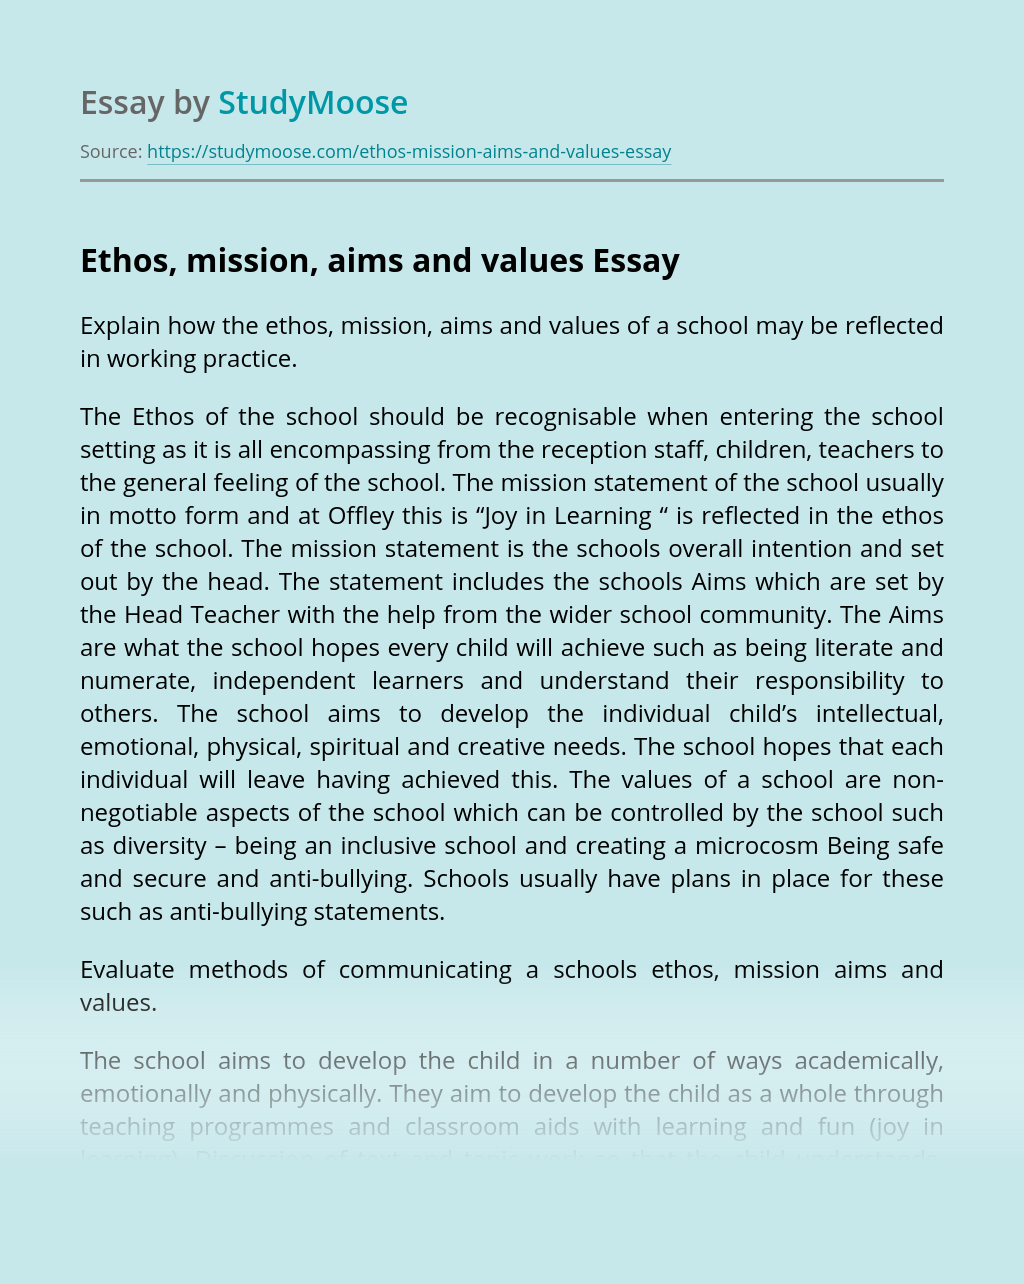 Ethos, mission, aims and values